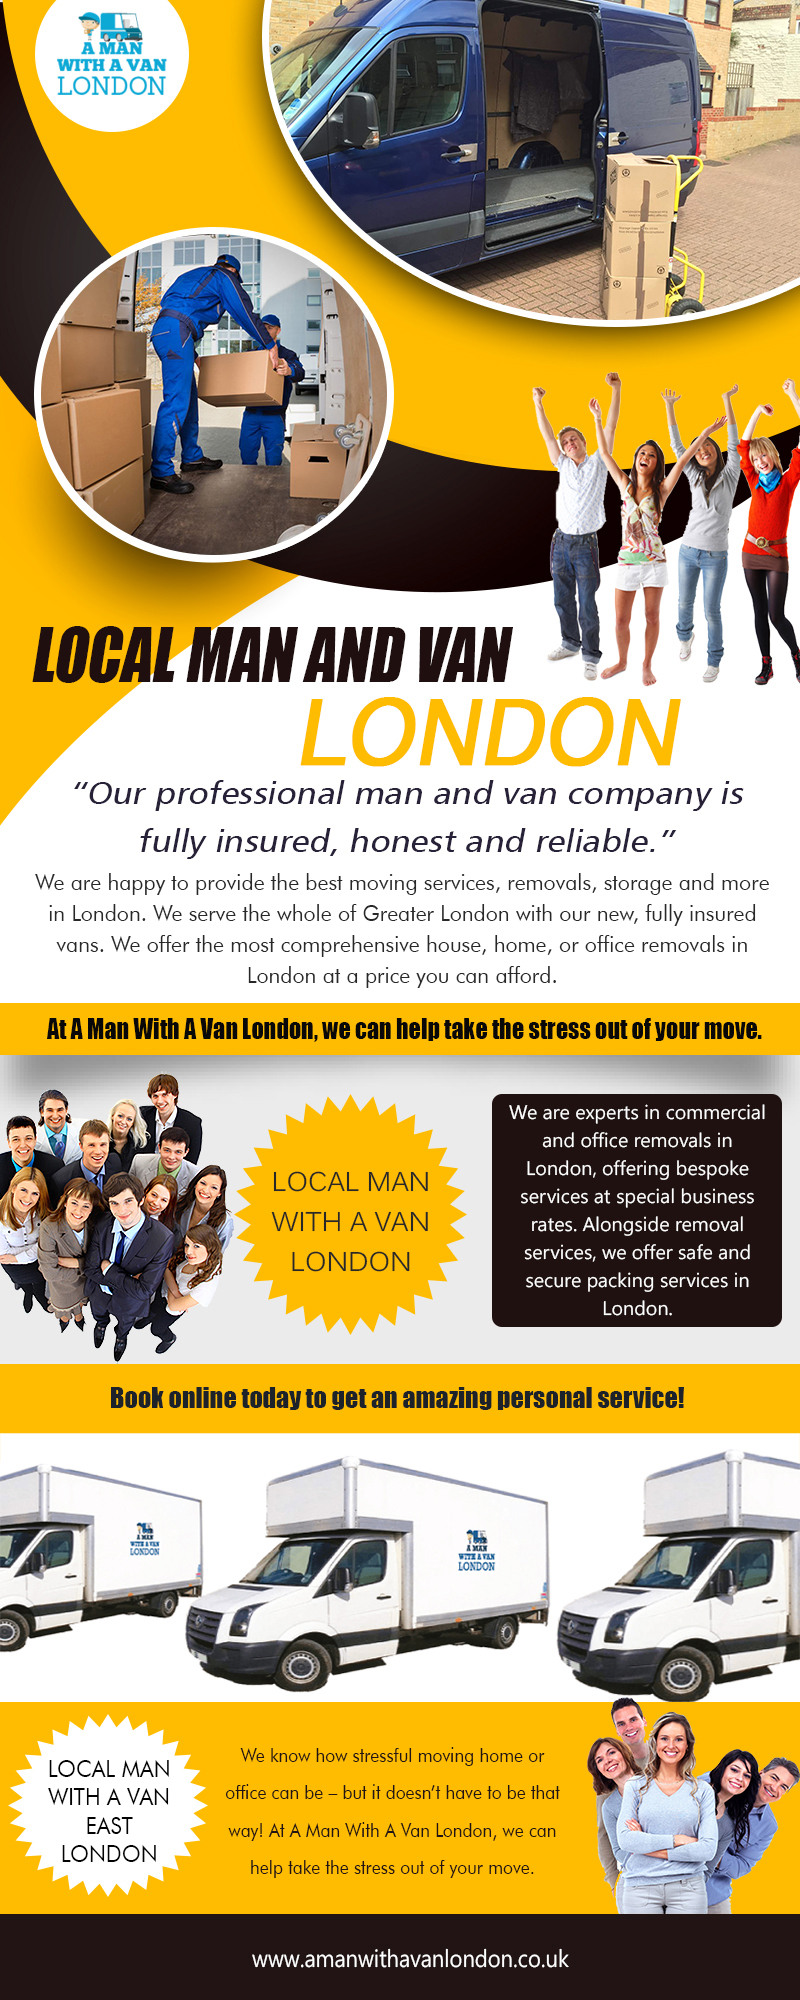 Local Man with a van London|https://www.amanwithavanlondon.co.uk/